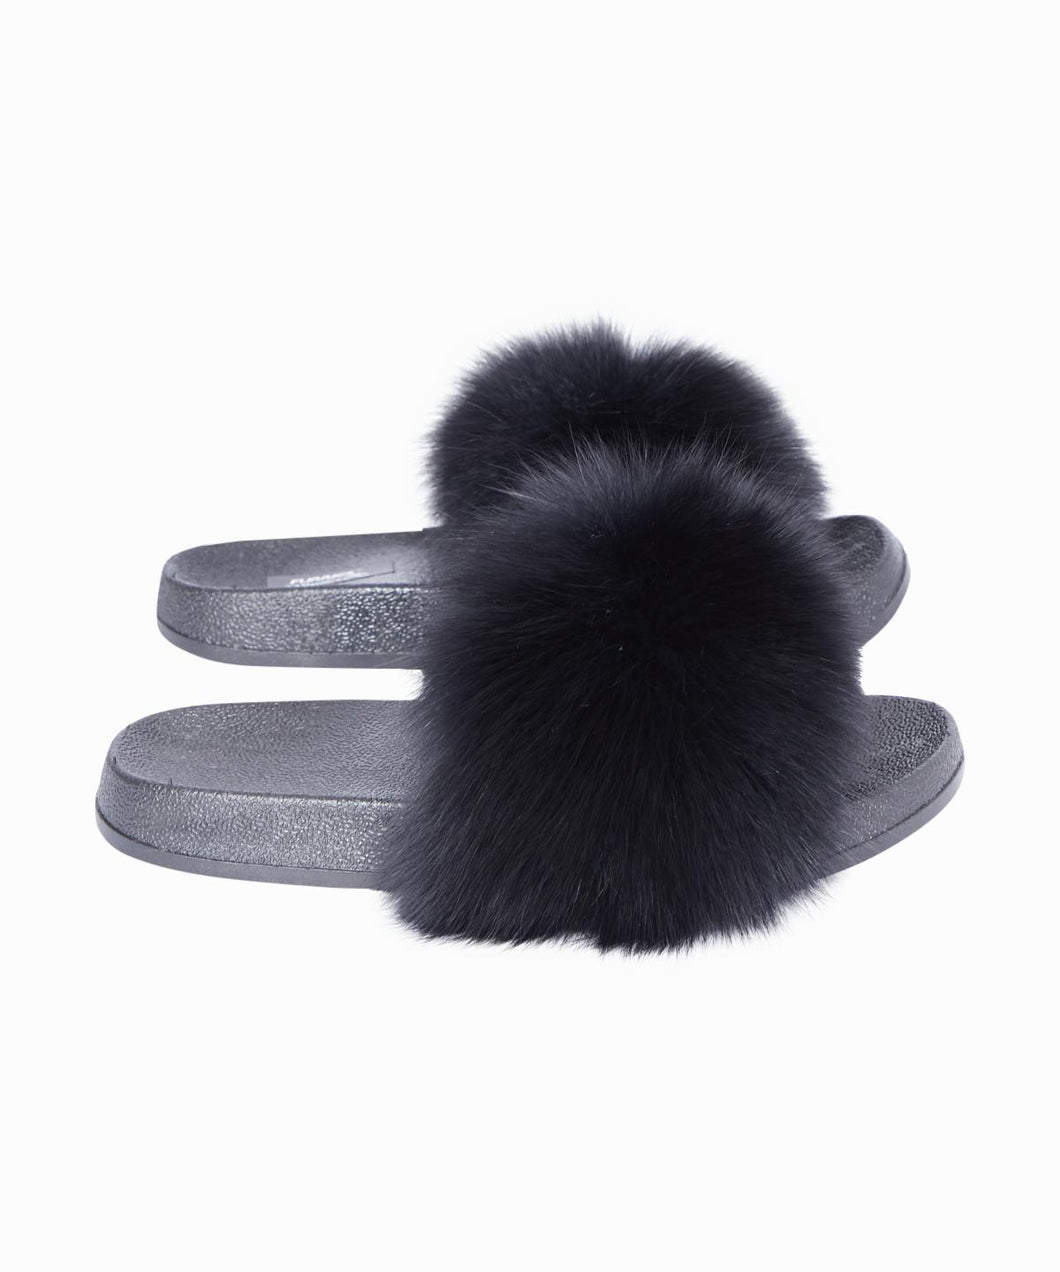 Maniere' Black Furry Pom Pom Slides